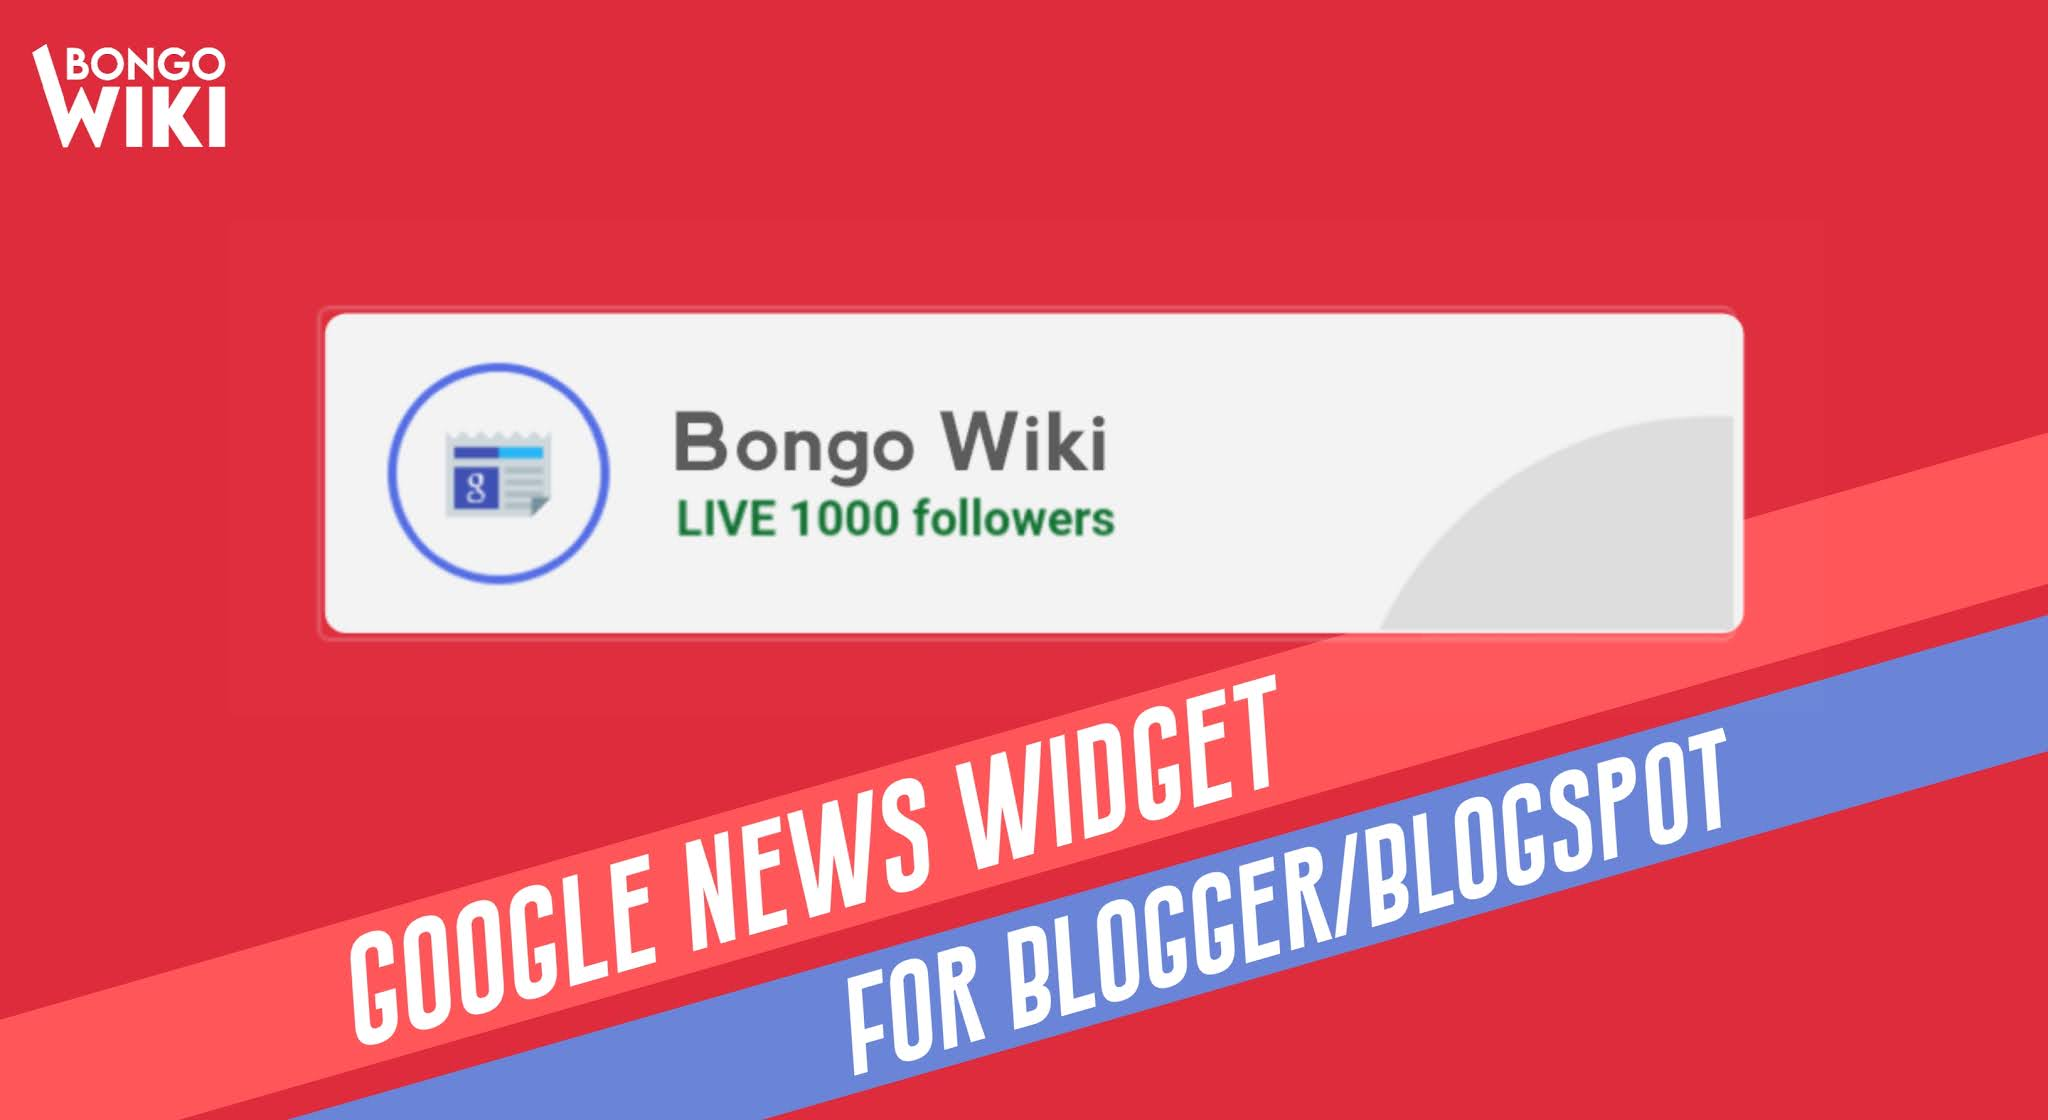 google news widget for Blogger Blogspot